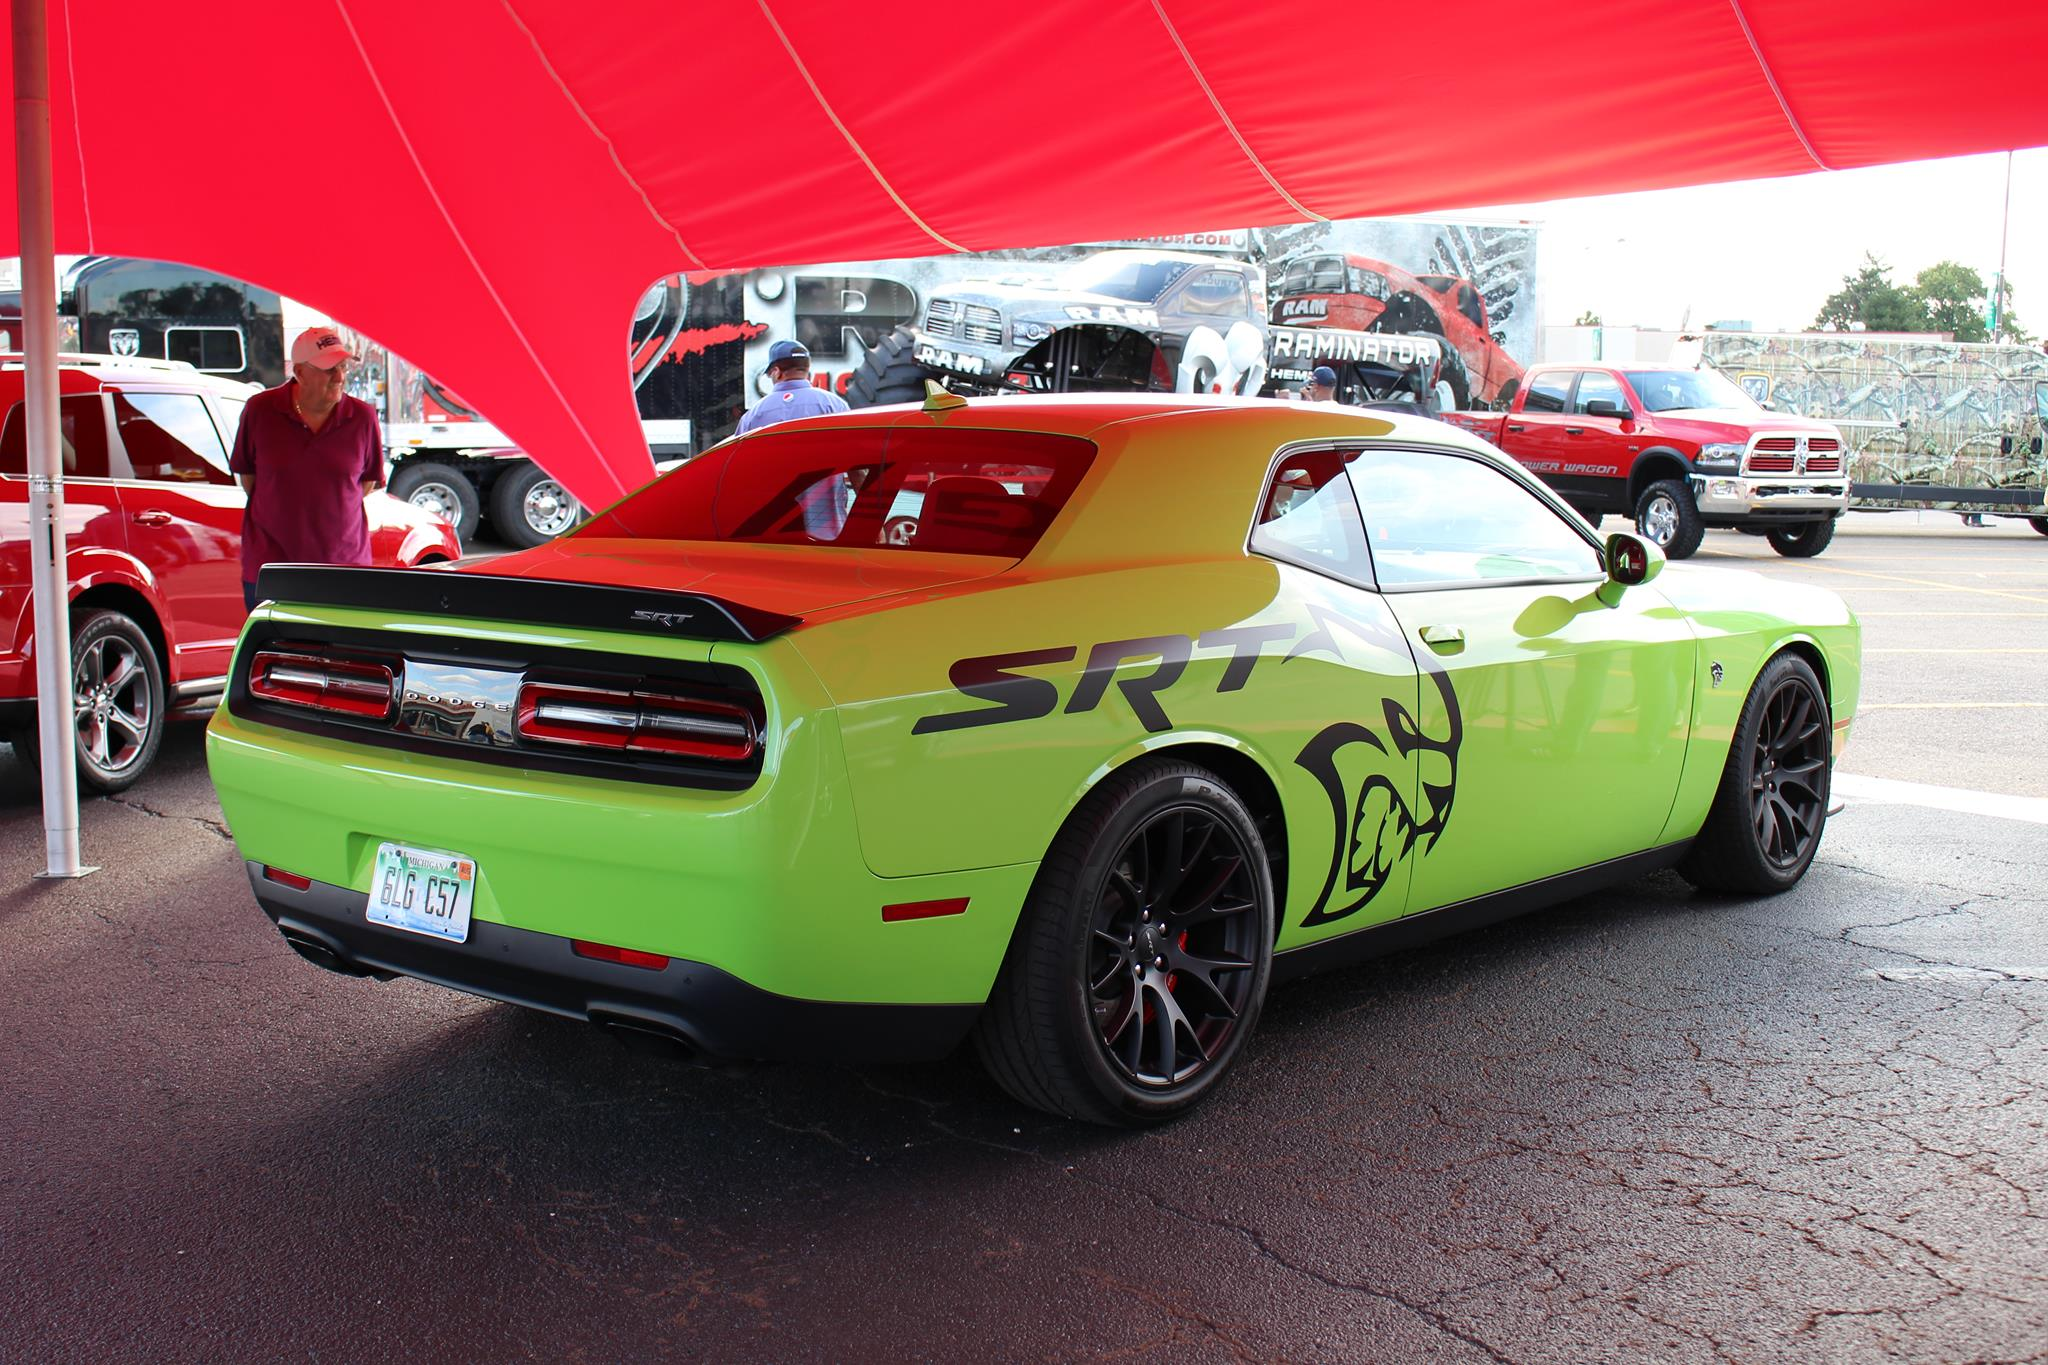 Hellcat Decals For The Dodge Challenger Spark A Debate